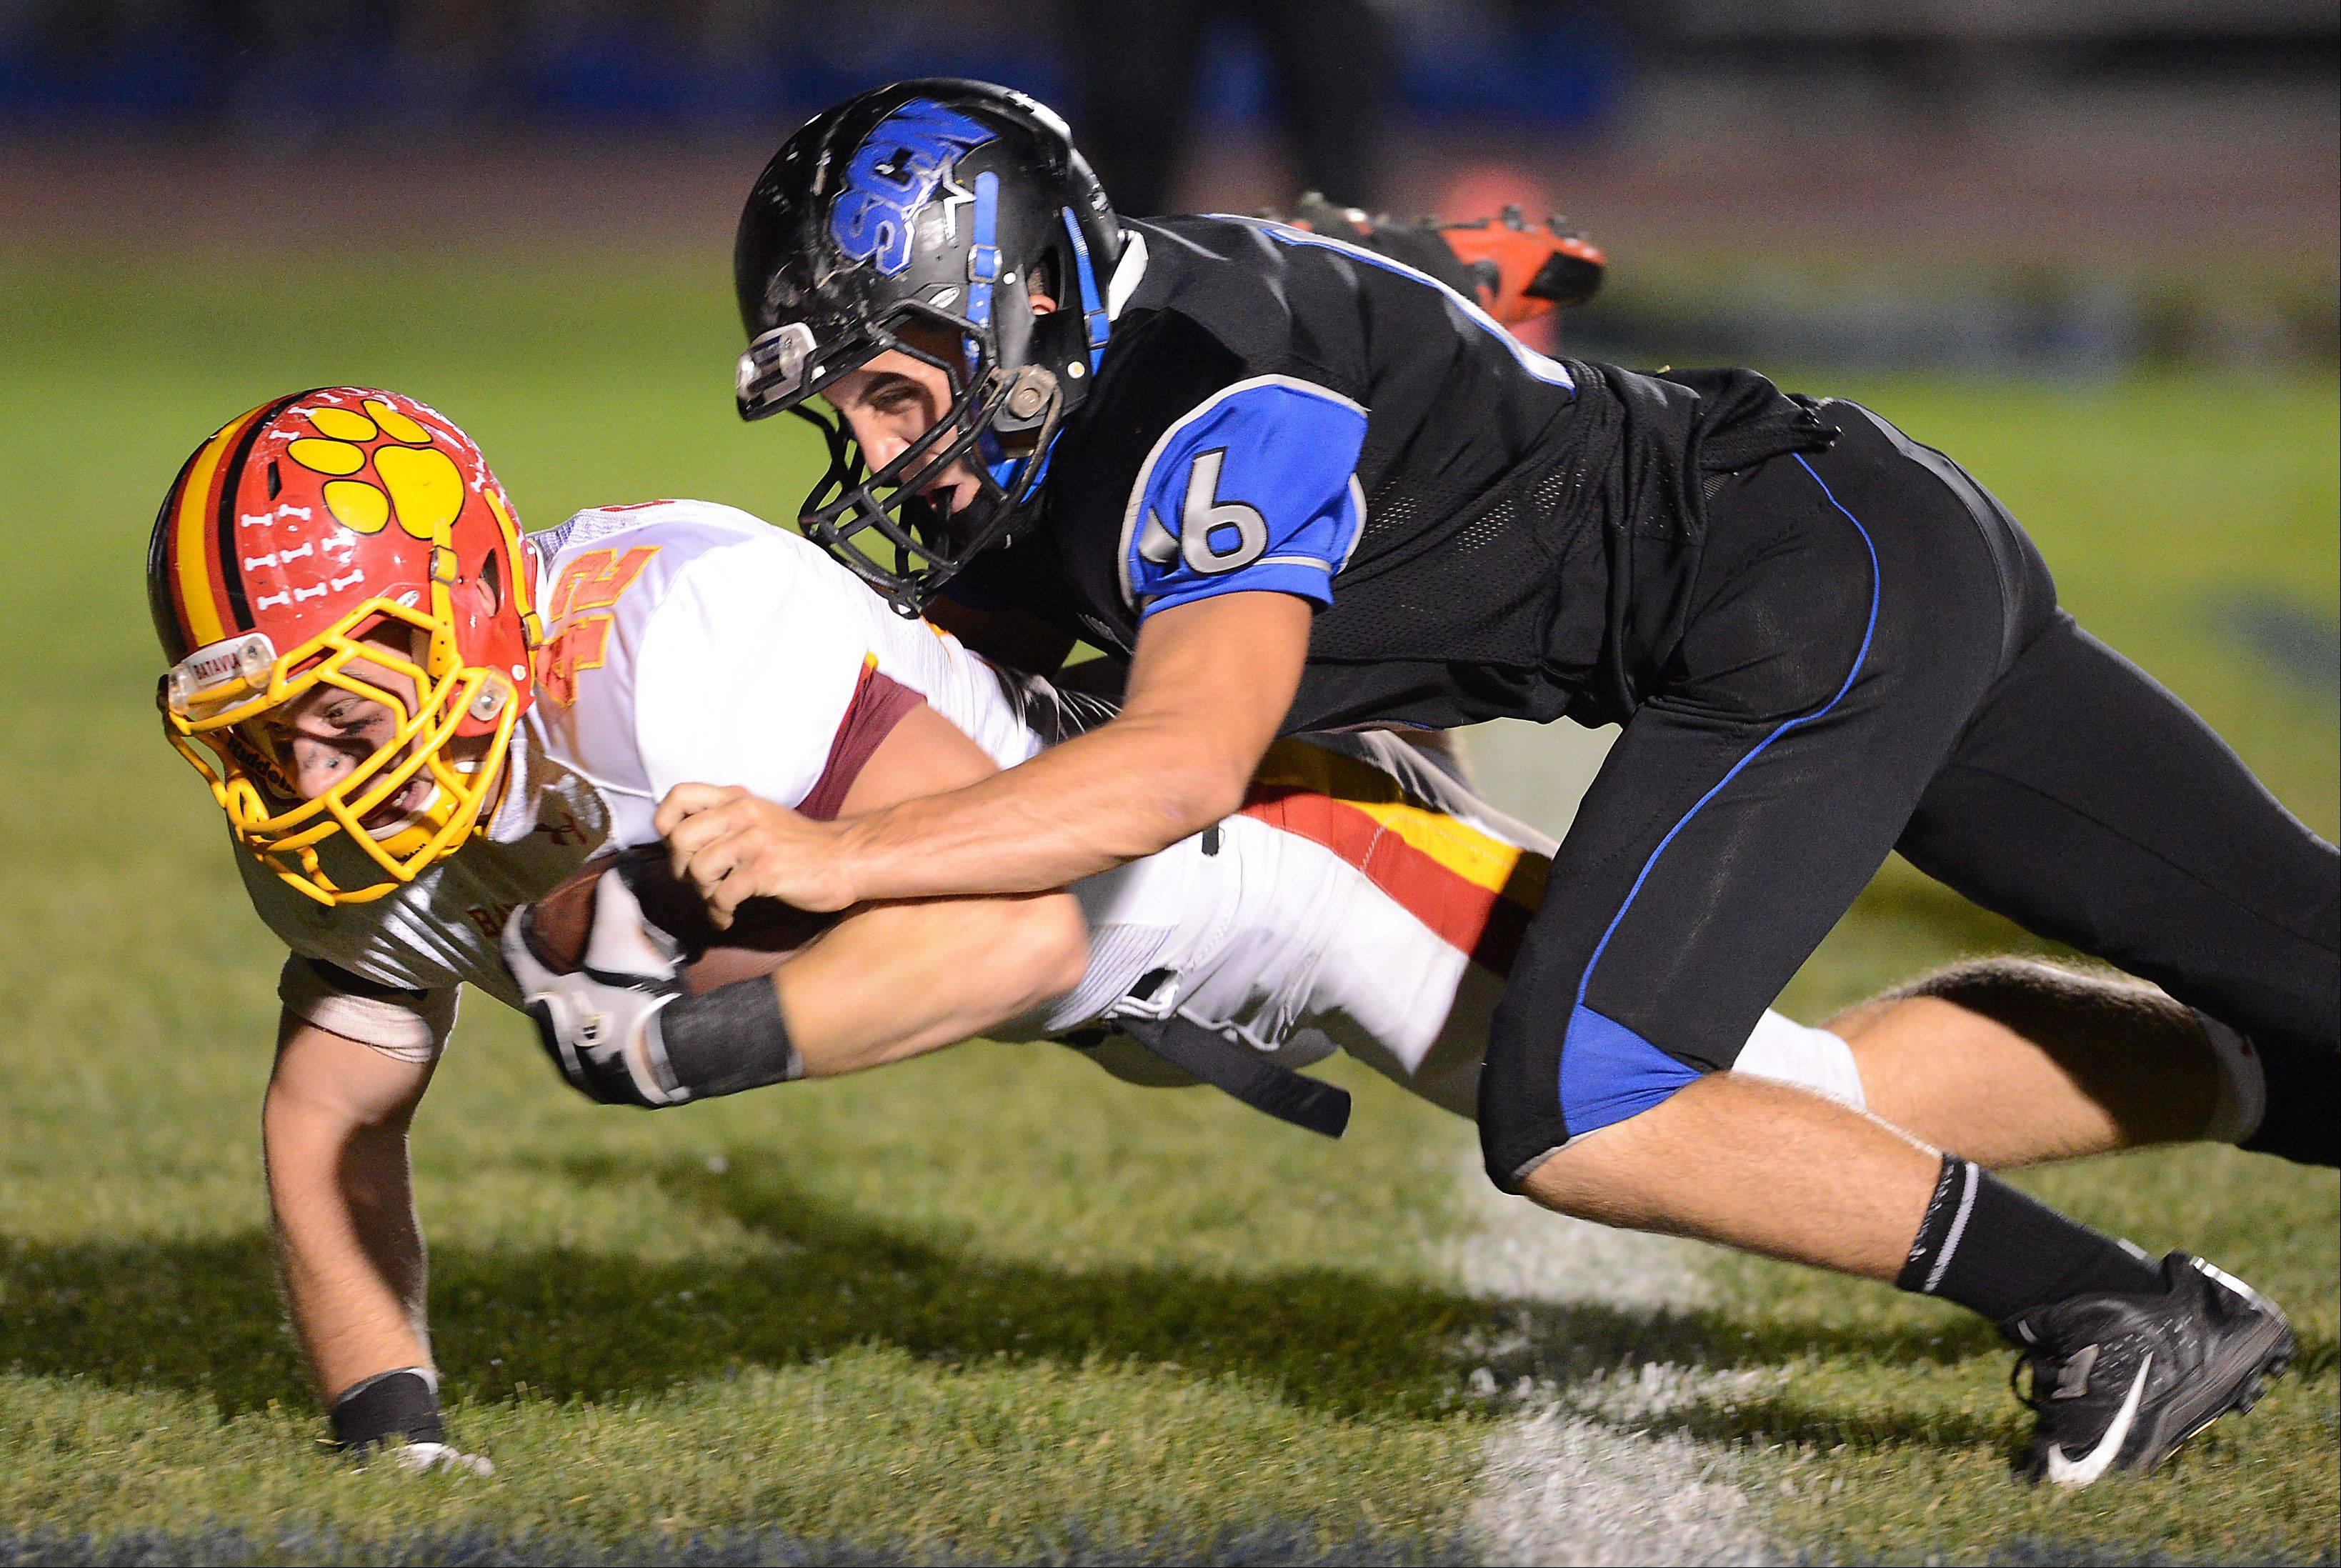 Batavia�s Kevin Green dives across the goalline under pressure from St Charles North�s Tyler Bell for a touchdown to put the Bulldogs up 19-0 .